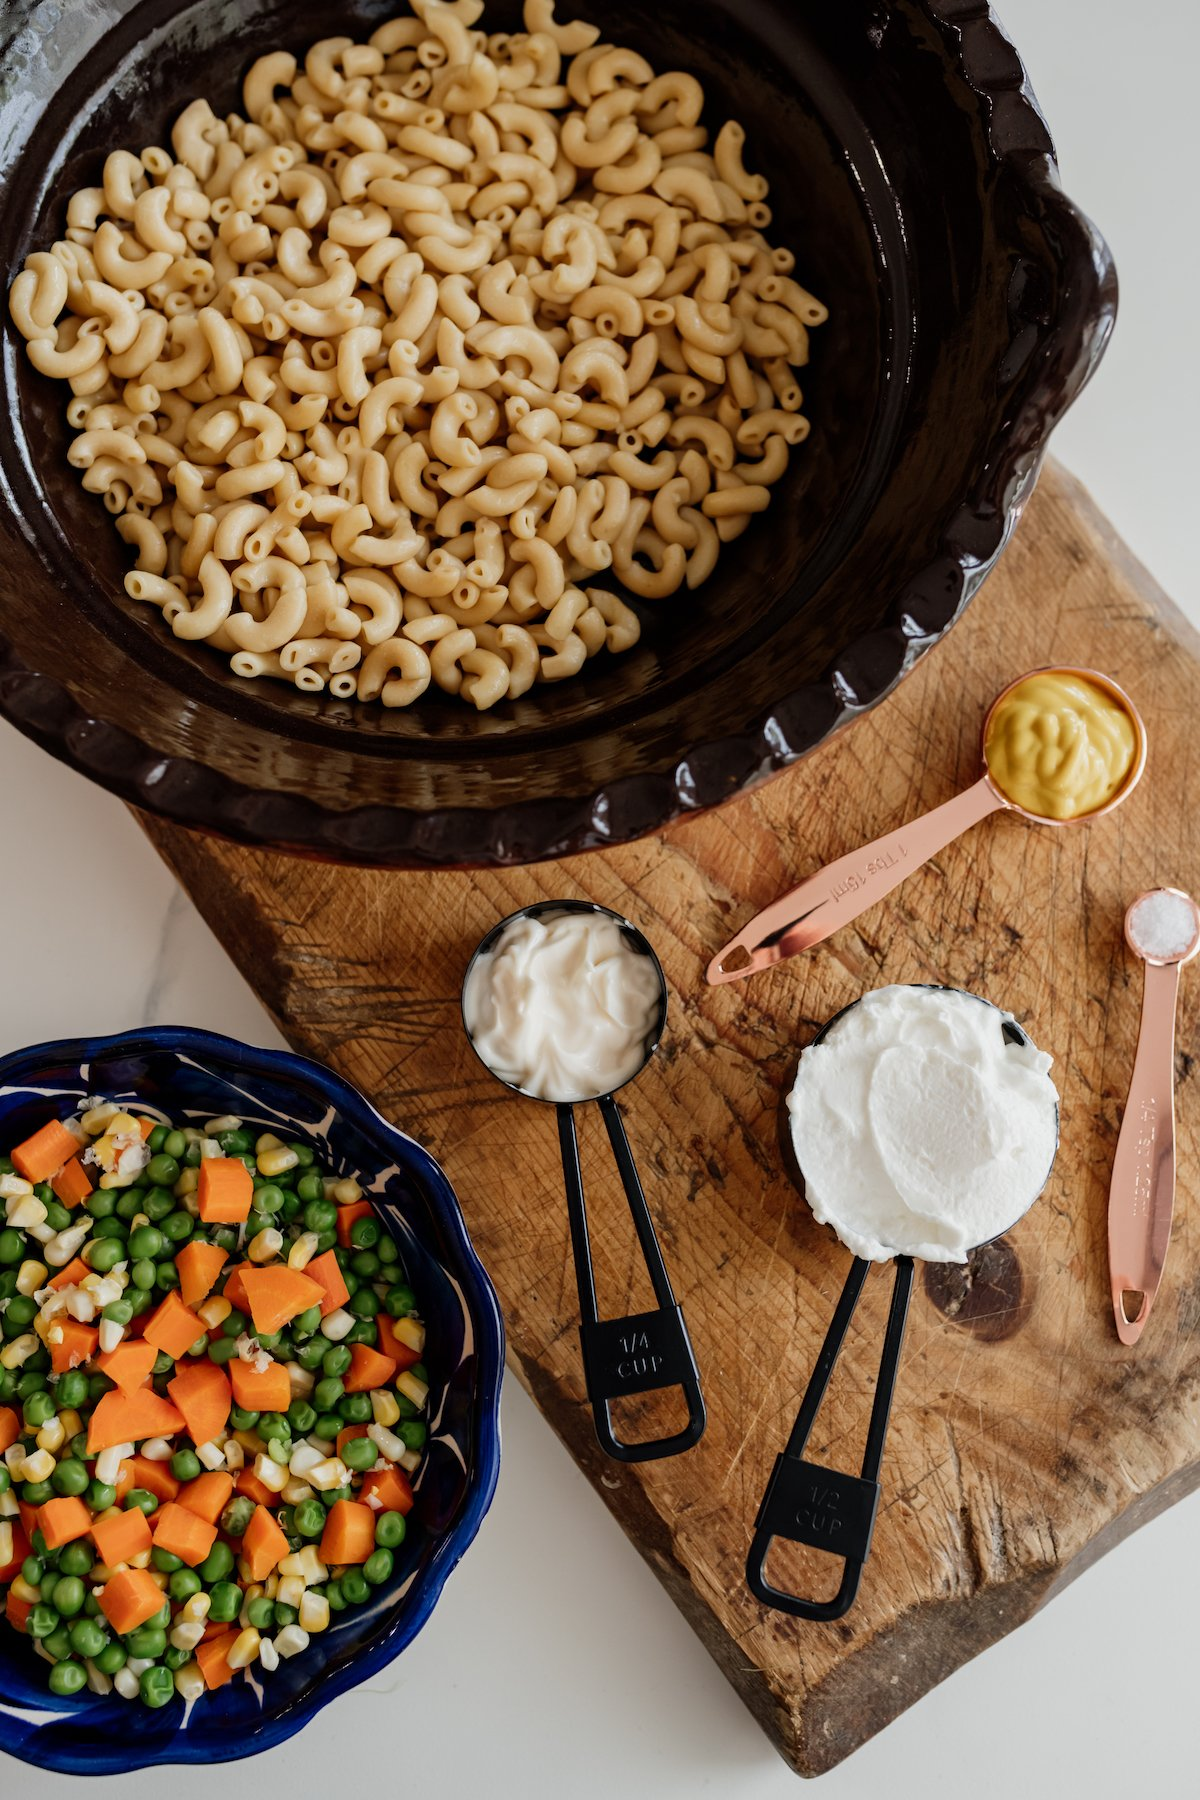 cooked macaroni in a brown Mexican bowl, cooked veggies in a blue bowl, and measuring cups and spoons with dressing ingredients on a wooden board